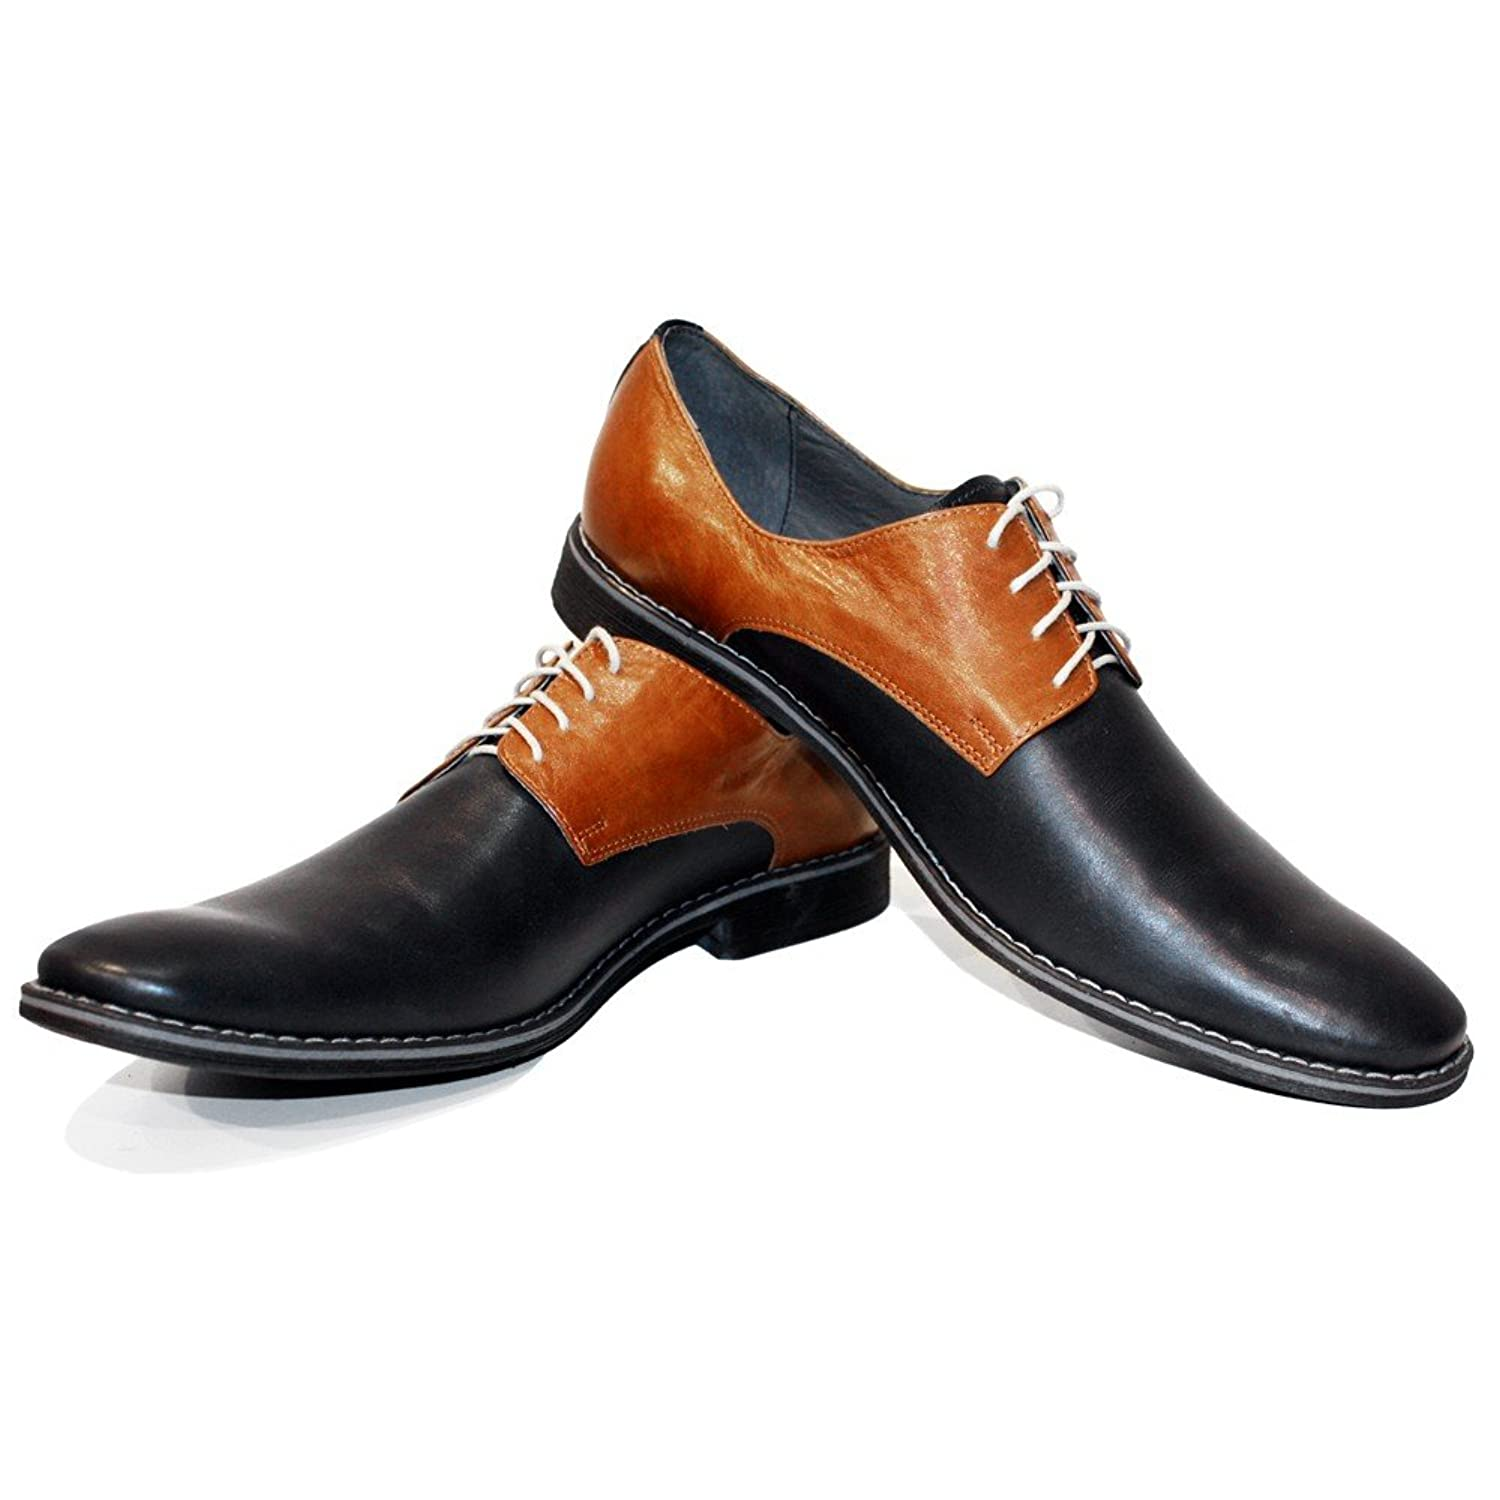 adeecfd54522 Modello Pepperito - Handmade Italian Mens Brown Oxfords Dress Shoes -  Cowhide Smooth Leather - Lace